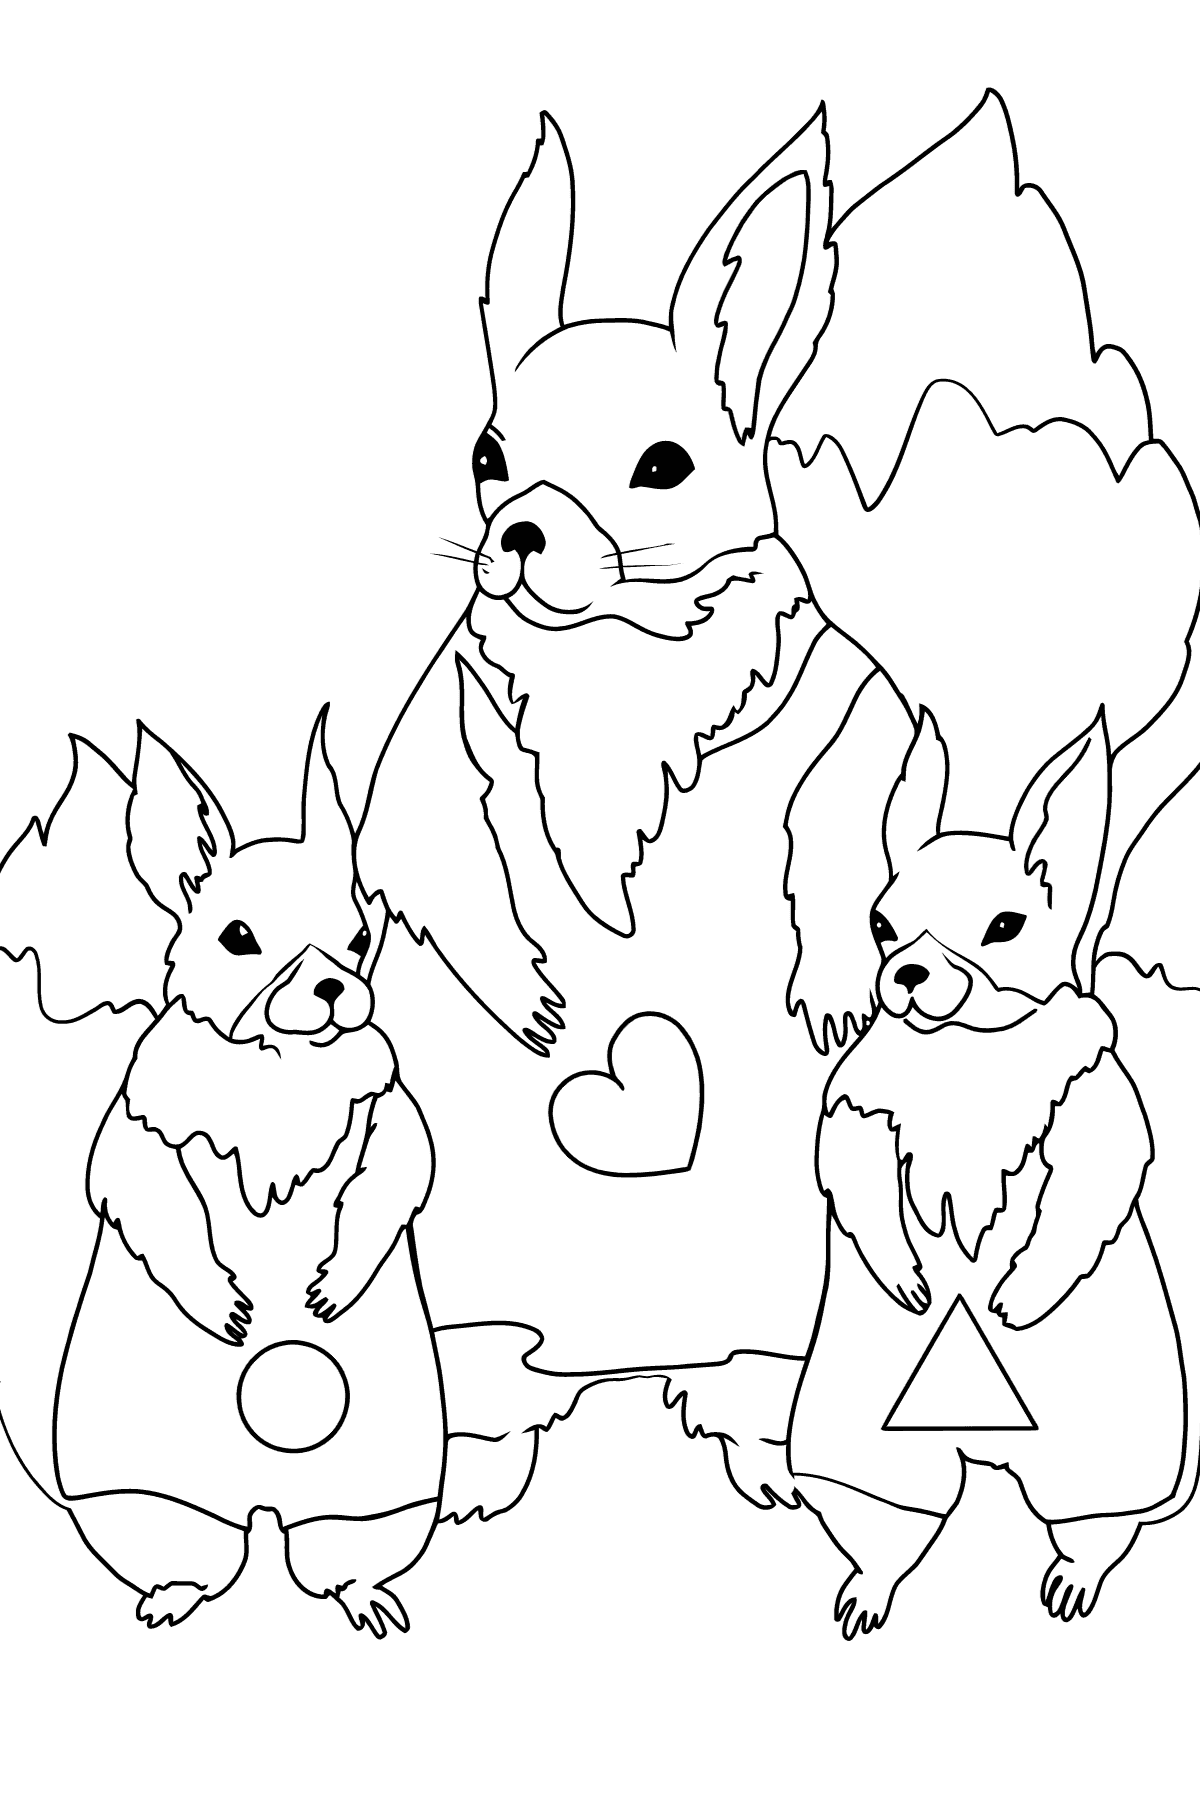 Spring Coloring Page - Beautiful Squirrels for Kids